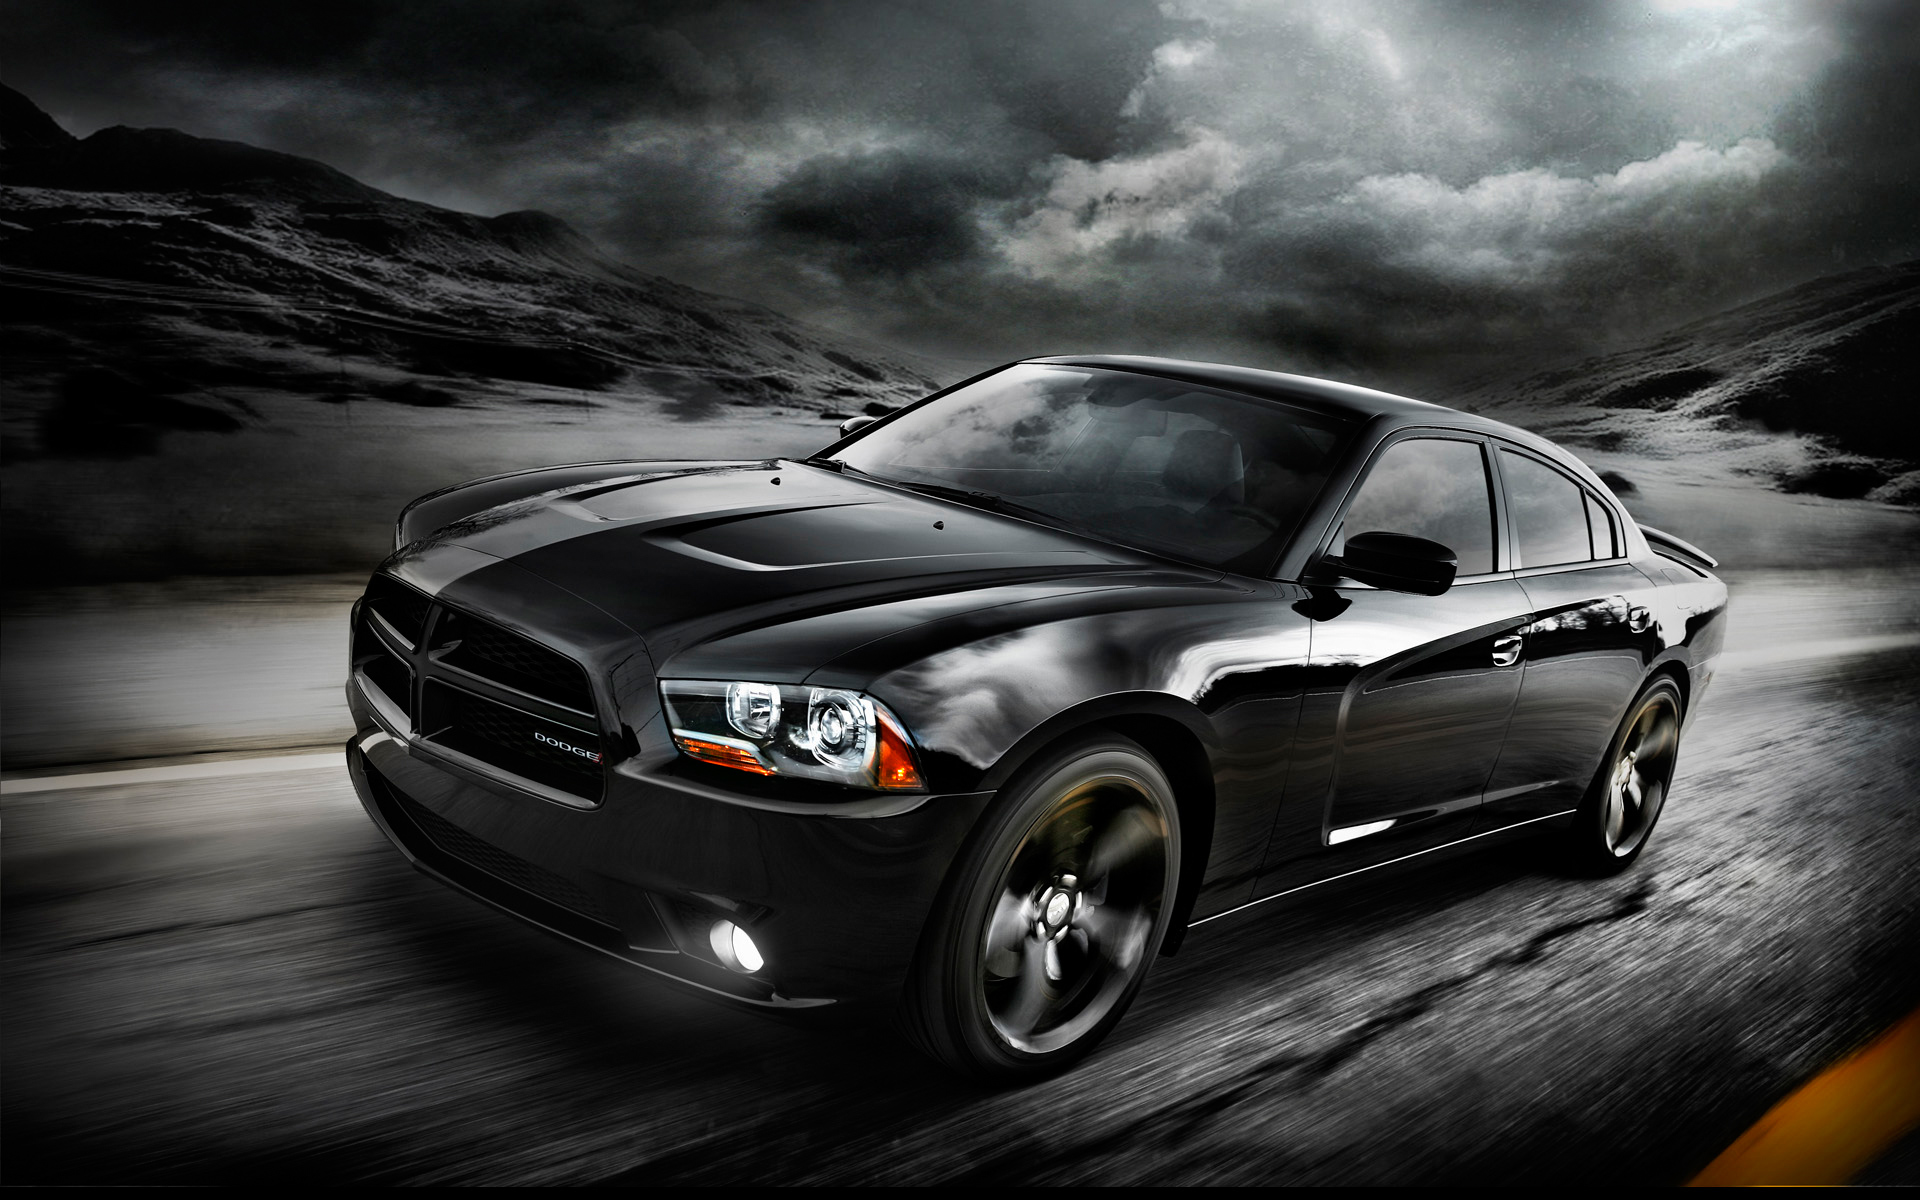 2012 Dodge Charger Wallpaper HD Car Wallpapers 1920x1200